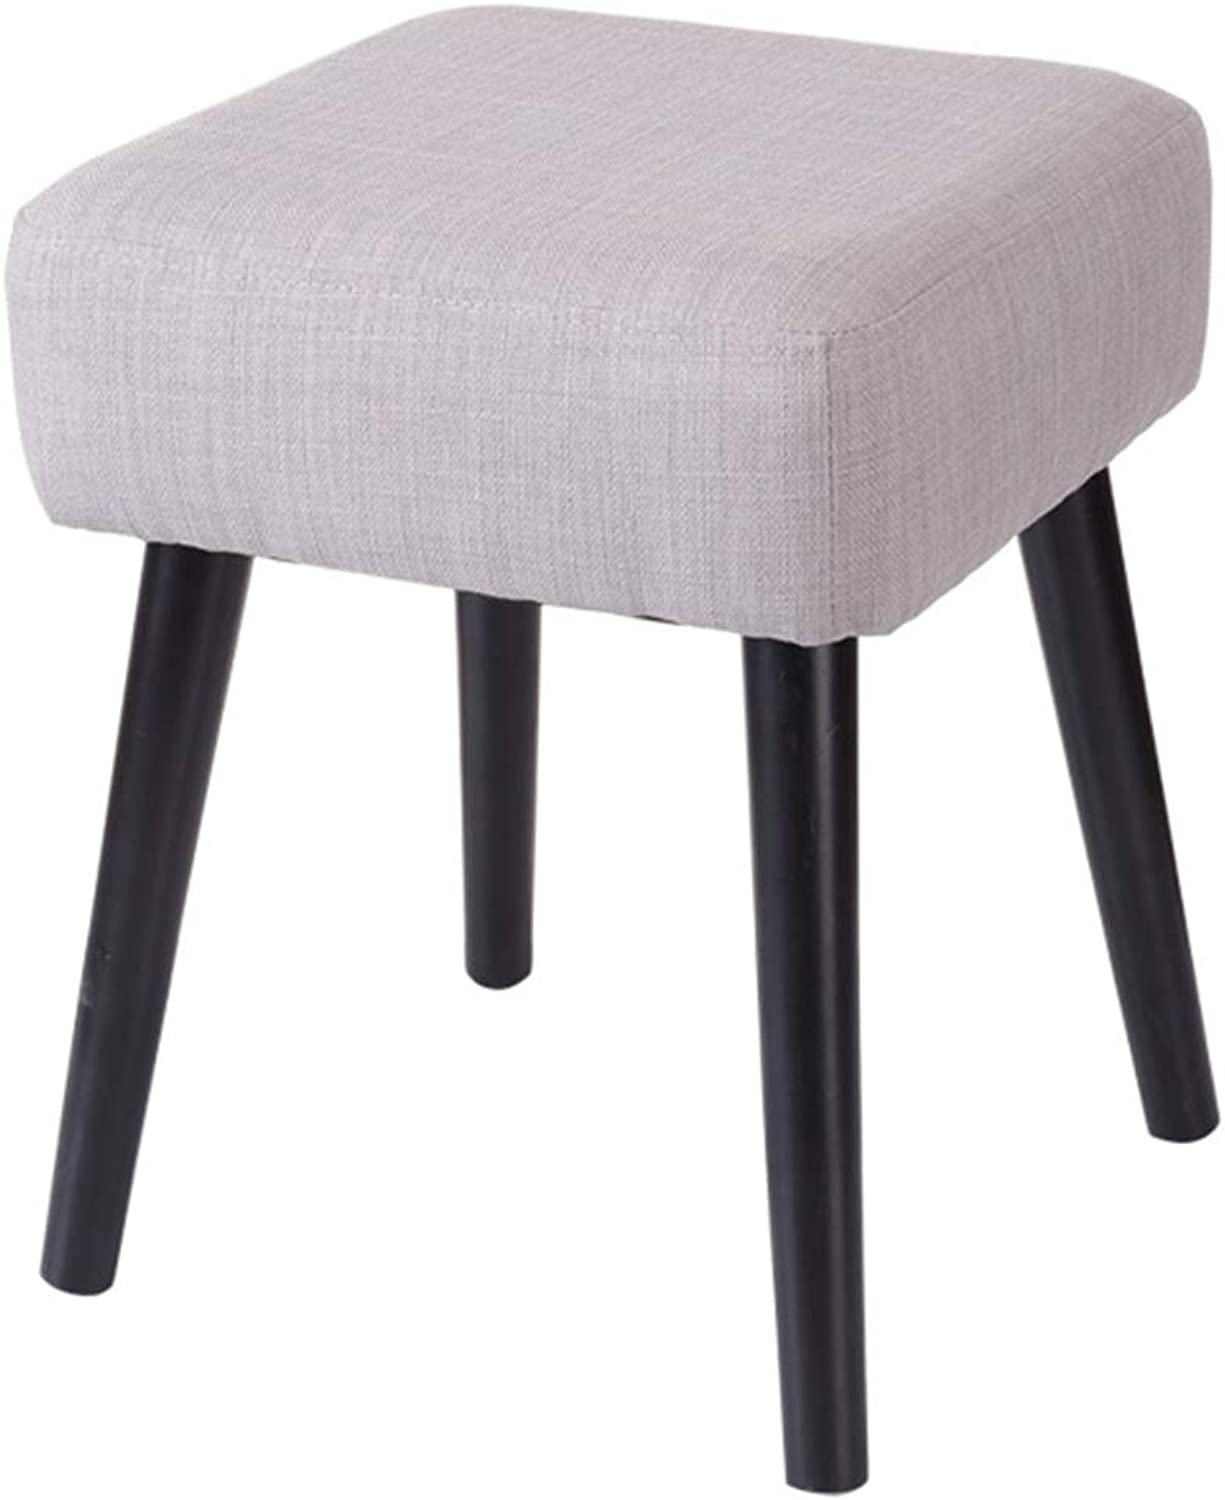 WEIYV-Barstools,bar Chair Change shoes Bench Fashion Square Stool Solid Wood Low Stool Nordic shoes Bench Cloth Sofa Stool Test shoes Bench Bench Small Stool 40 Side